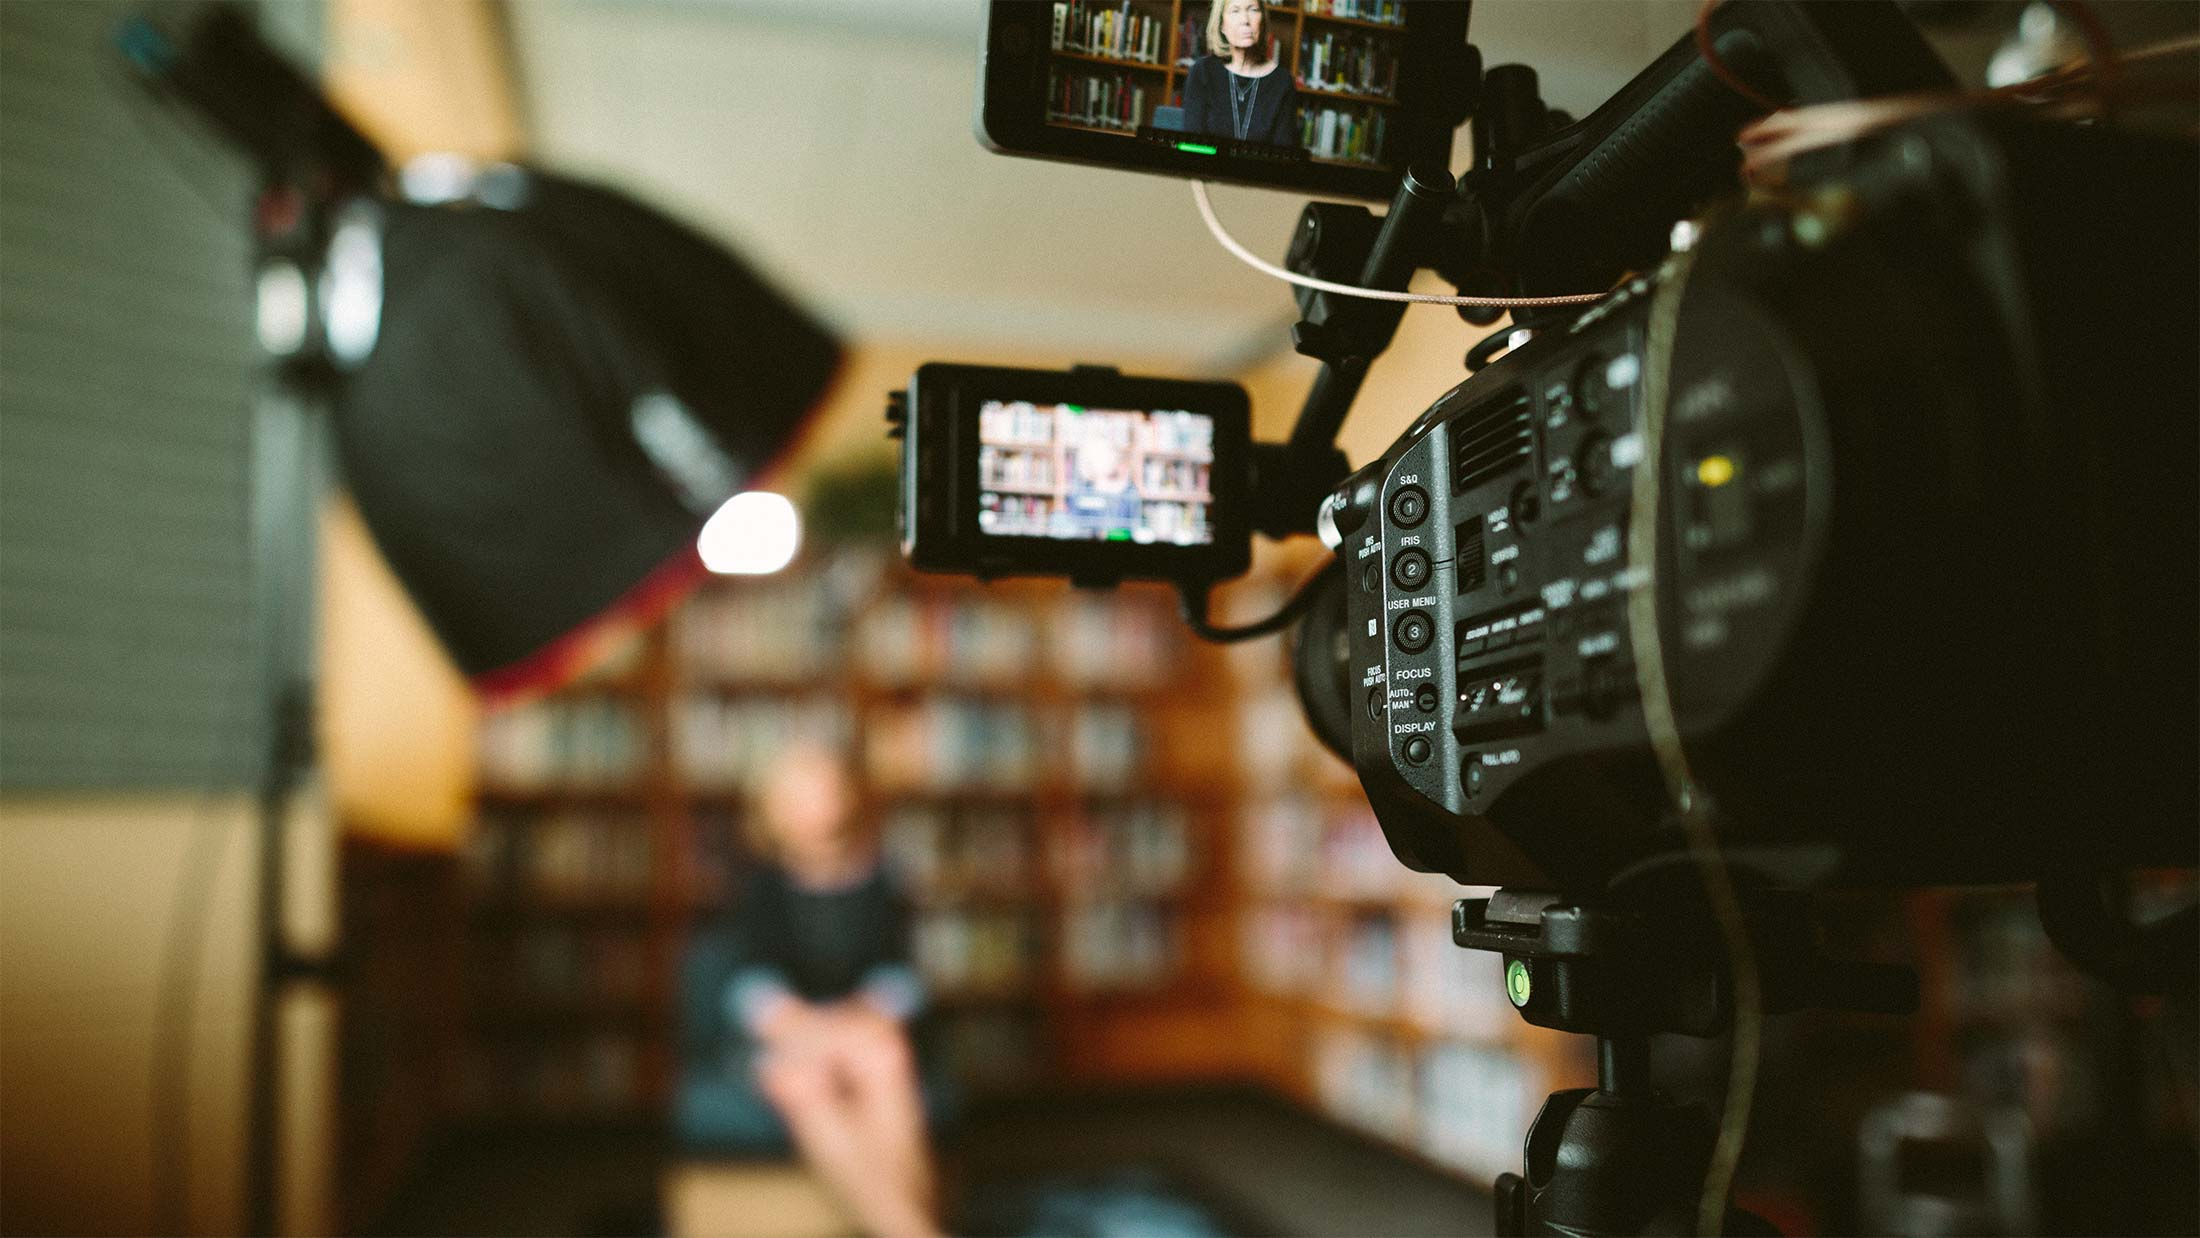 The Big Media & Entertainment Industry Trends for 2021